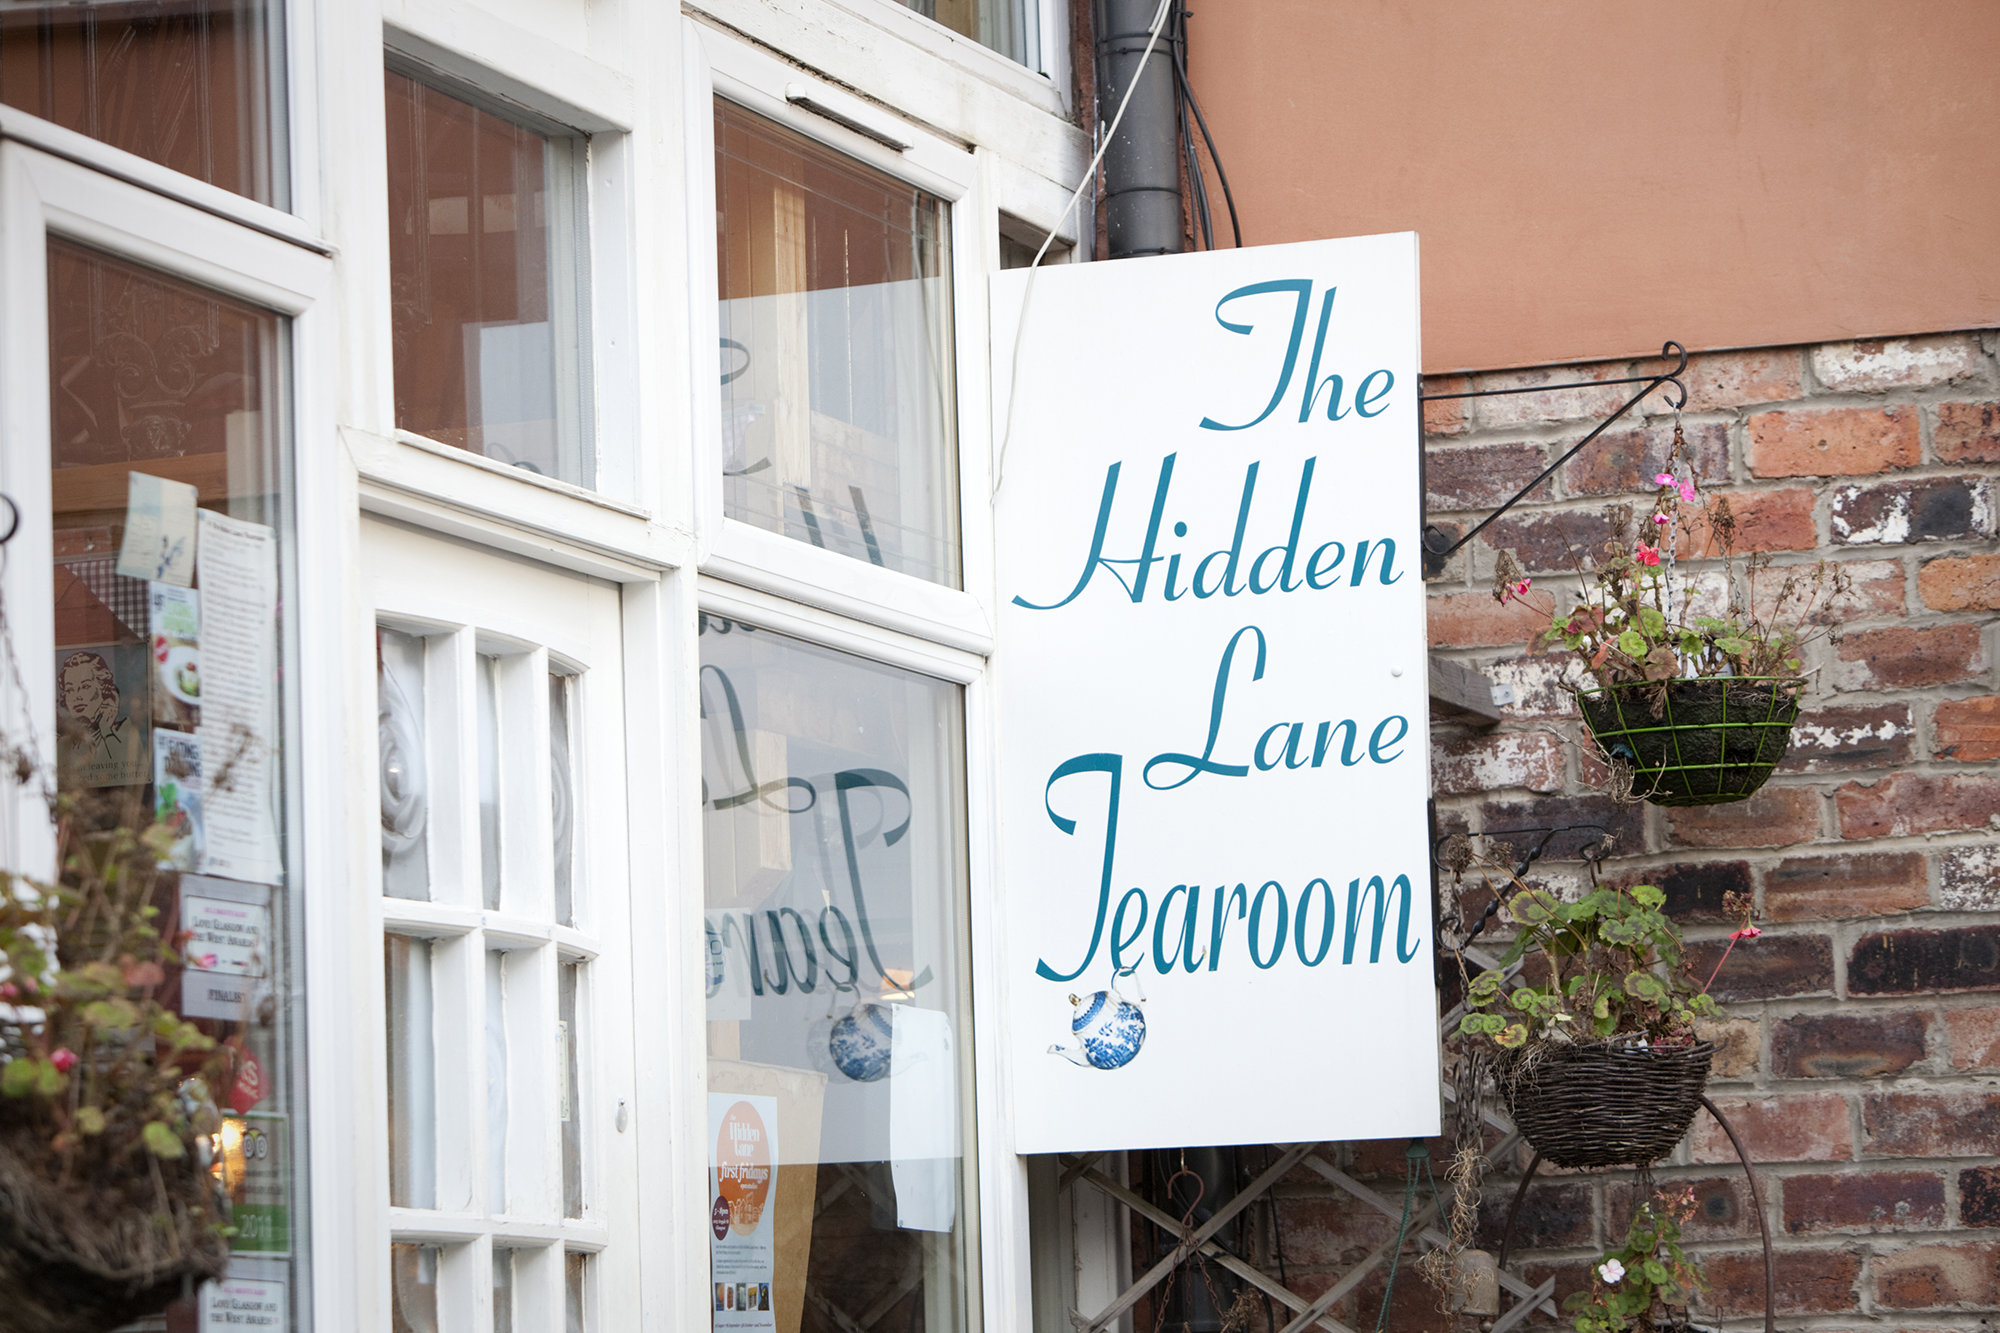 Hidden Lane Tearoom